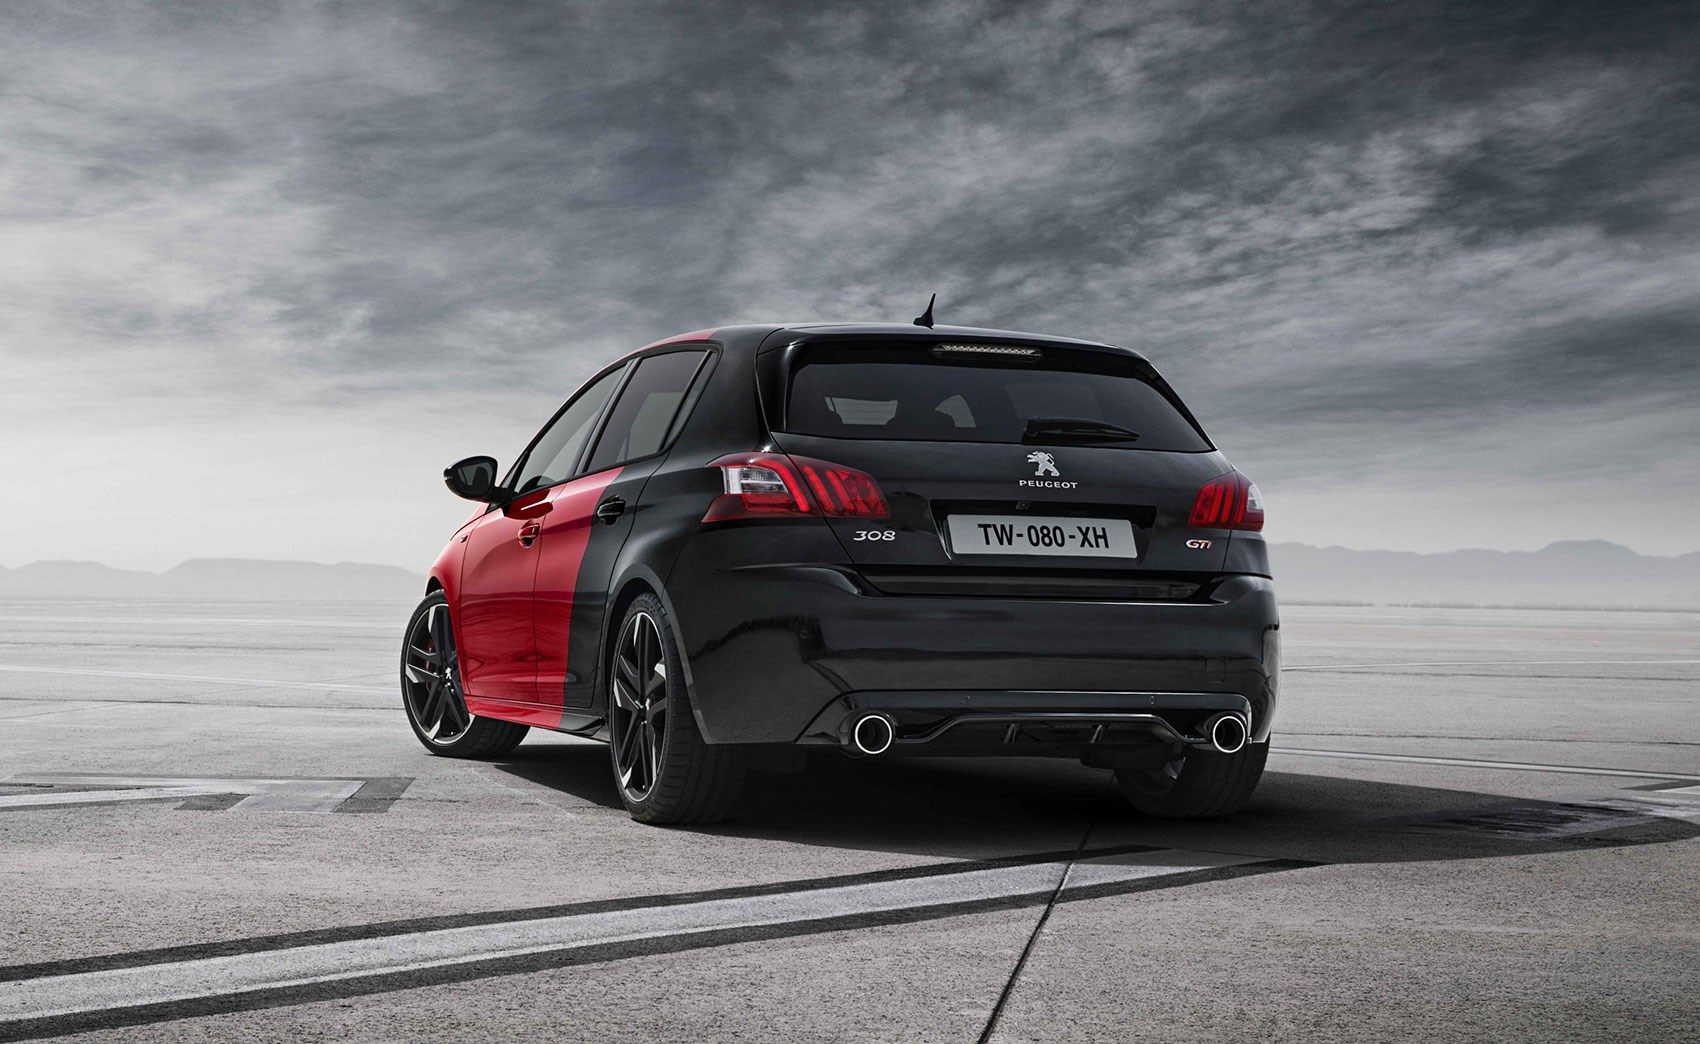 Peugeot 308 Gti 2015 The French Go Golf Bashing By Car